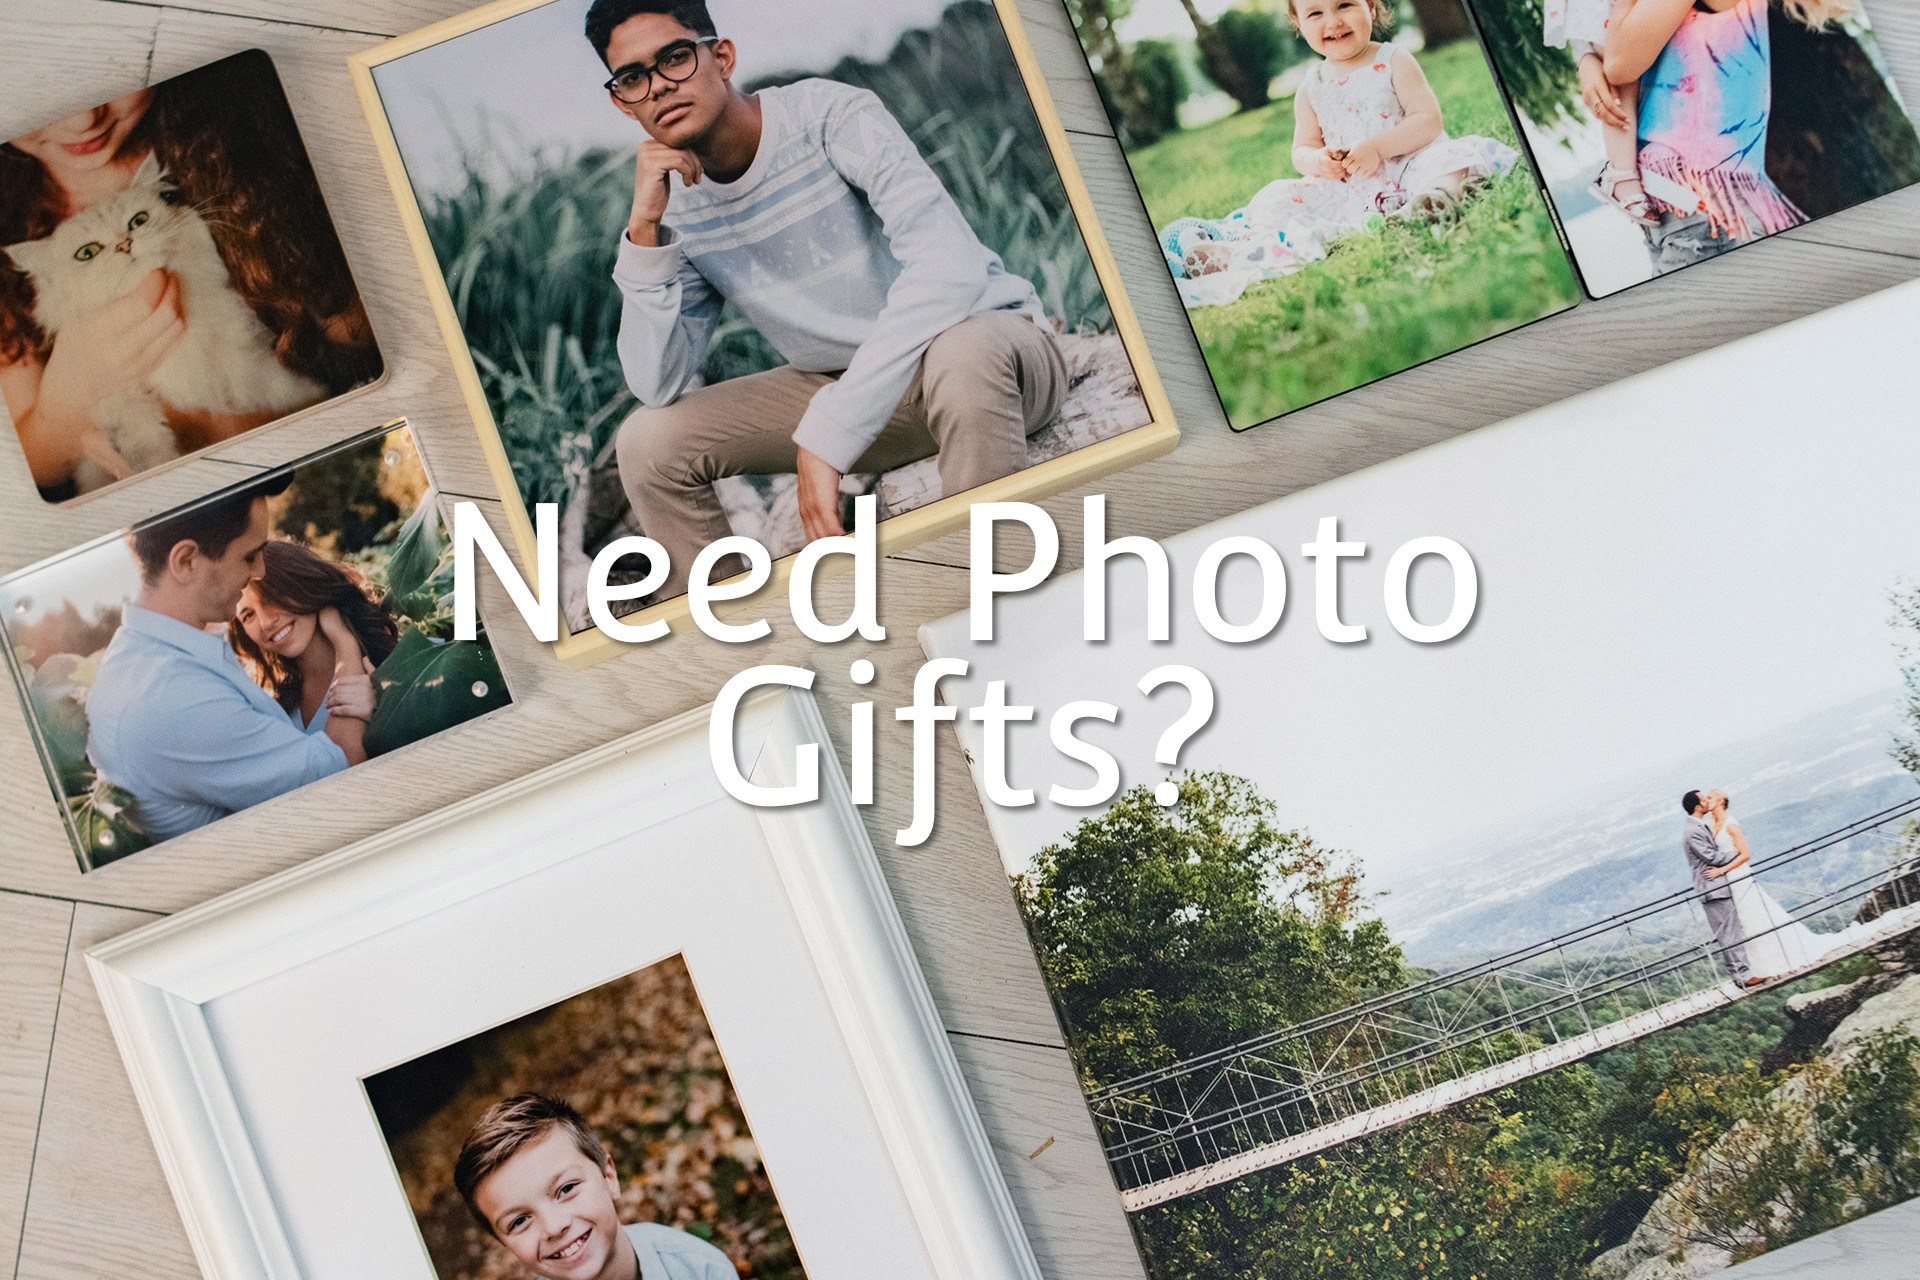 Need Photo Gifts